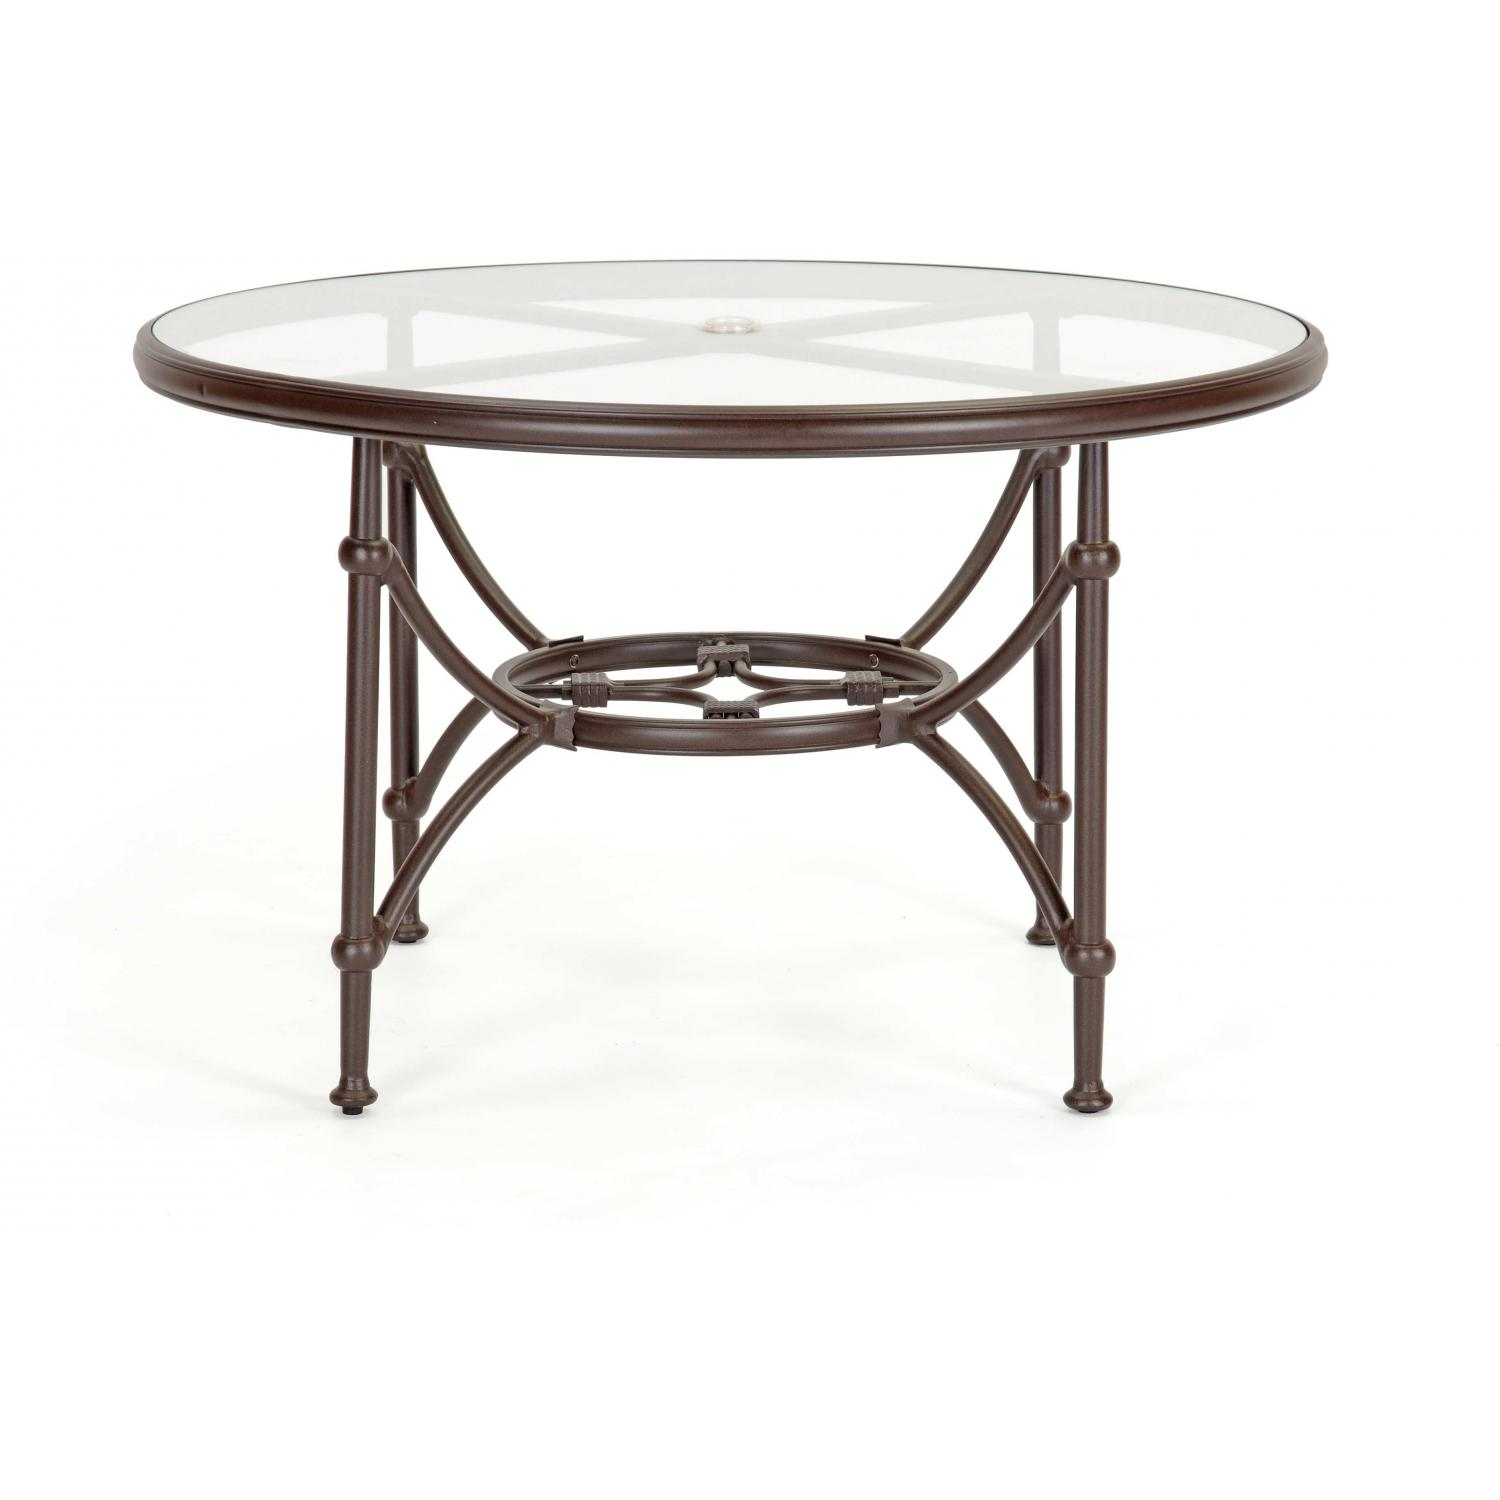 Caluco Origin Aluminum 48 Inch Round Dining Table